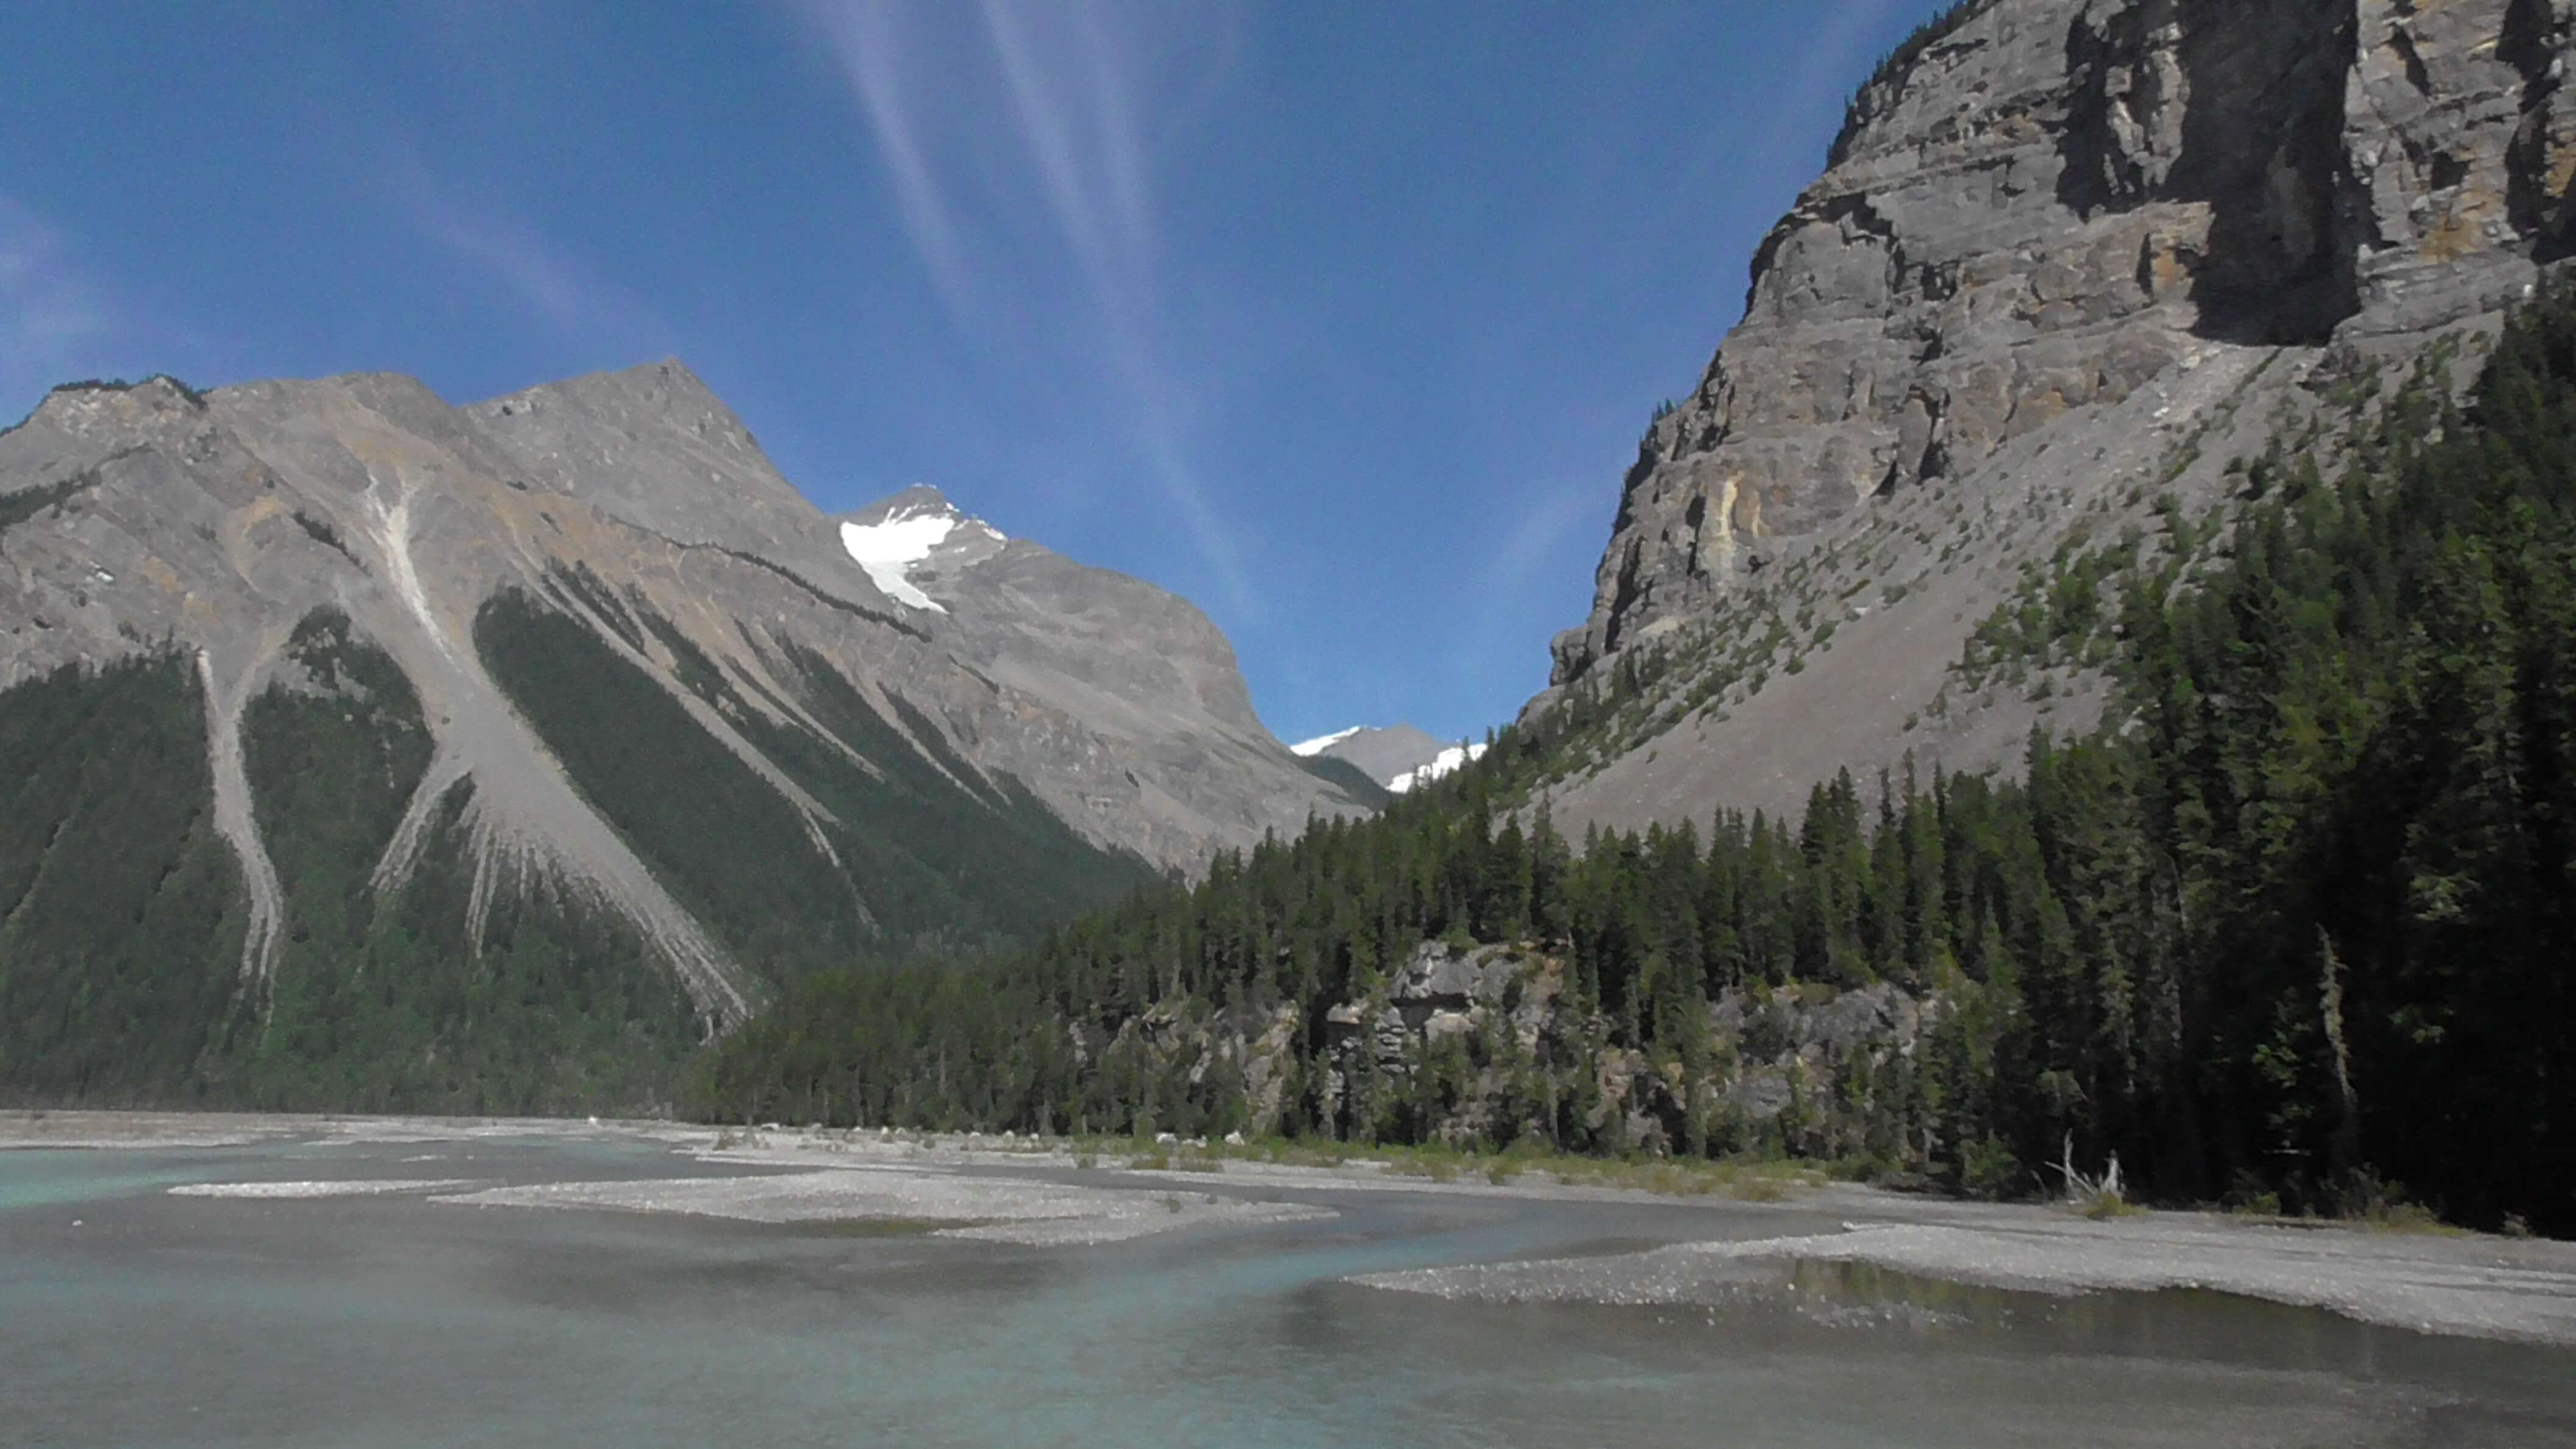 Glacier melt water flowing into Kinney Lake, Mount Robson Provincial Park, BC